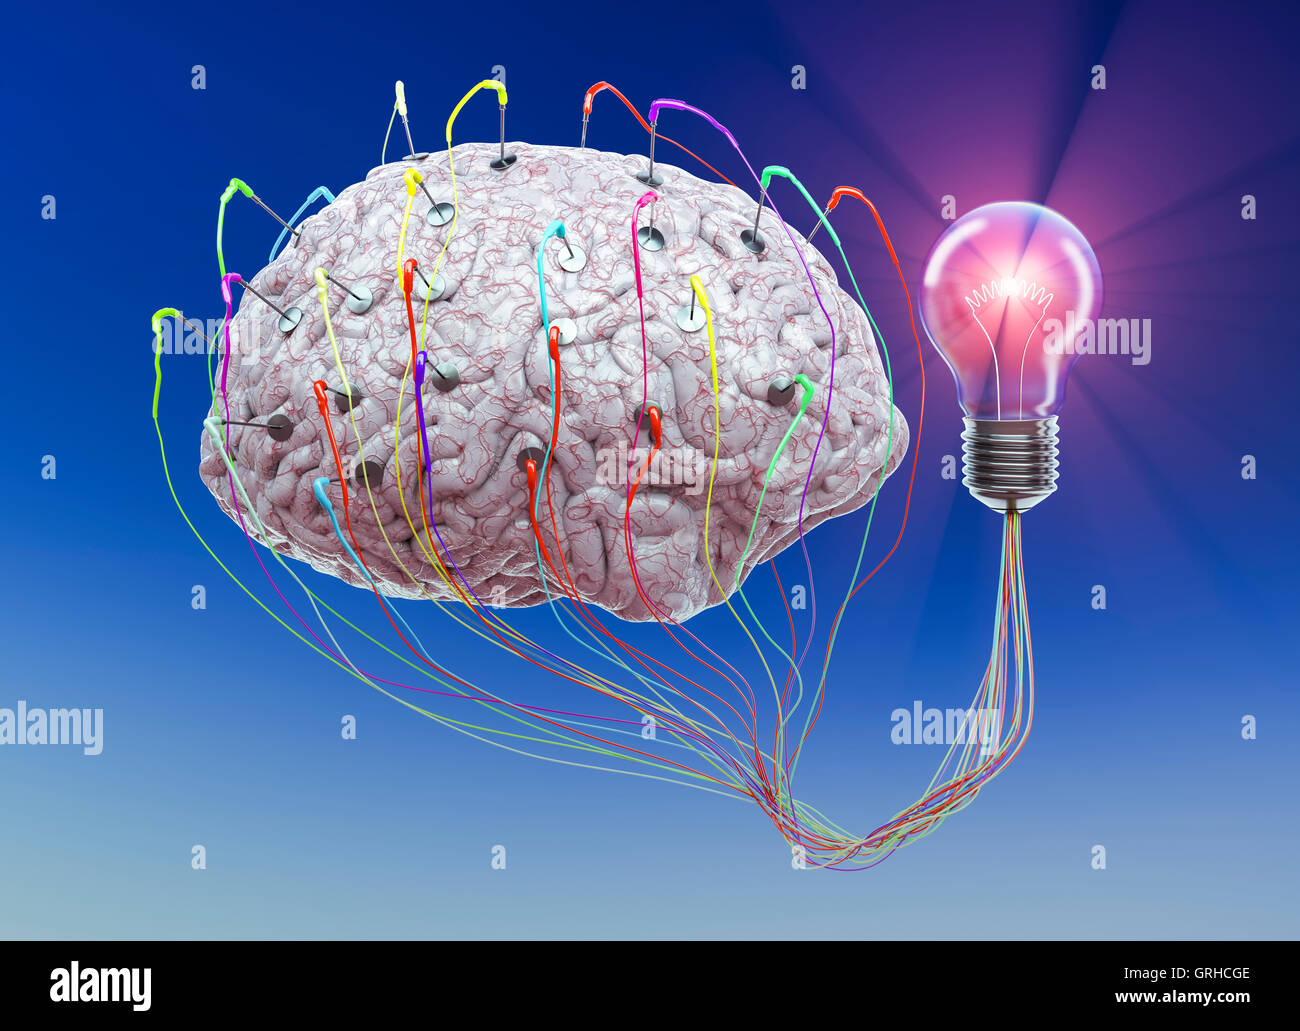 A human brain is wired up to a light bulb to show the concept of ideas - Stock Image